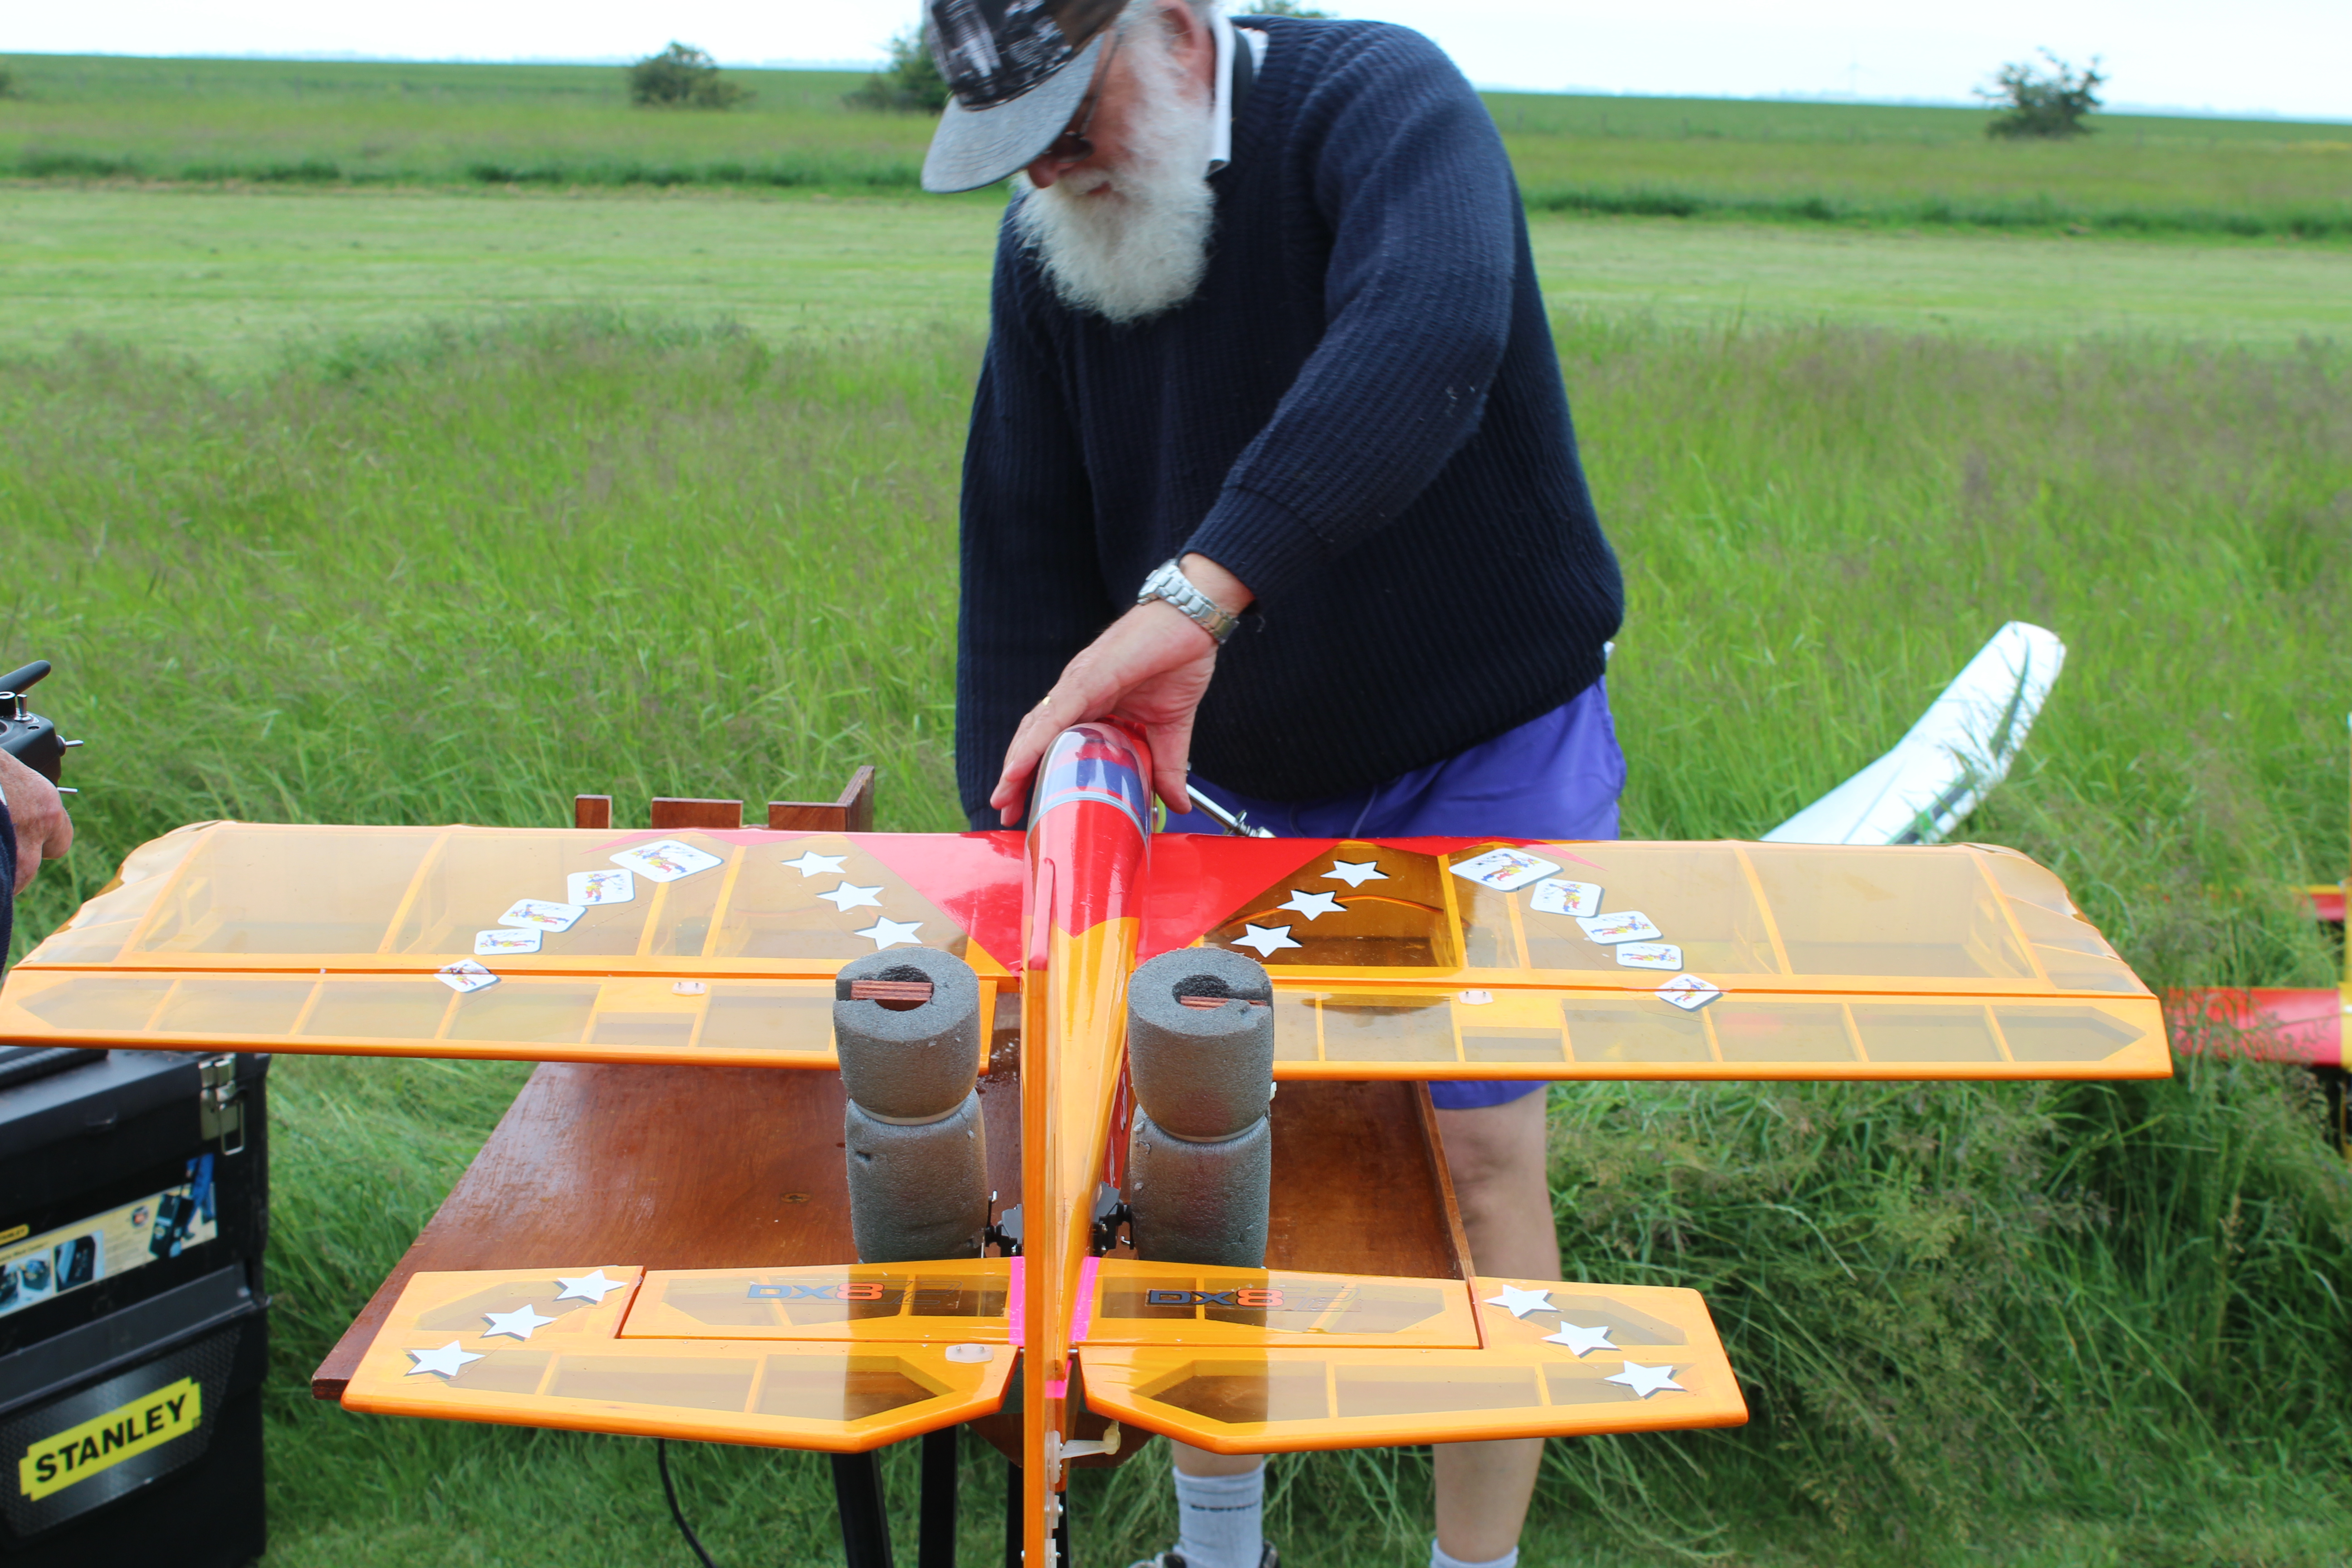 Snr's Wildcard being prepped for it's maiden flight